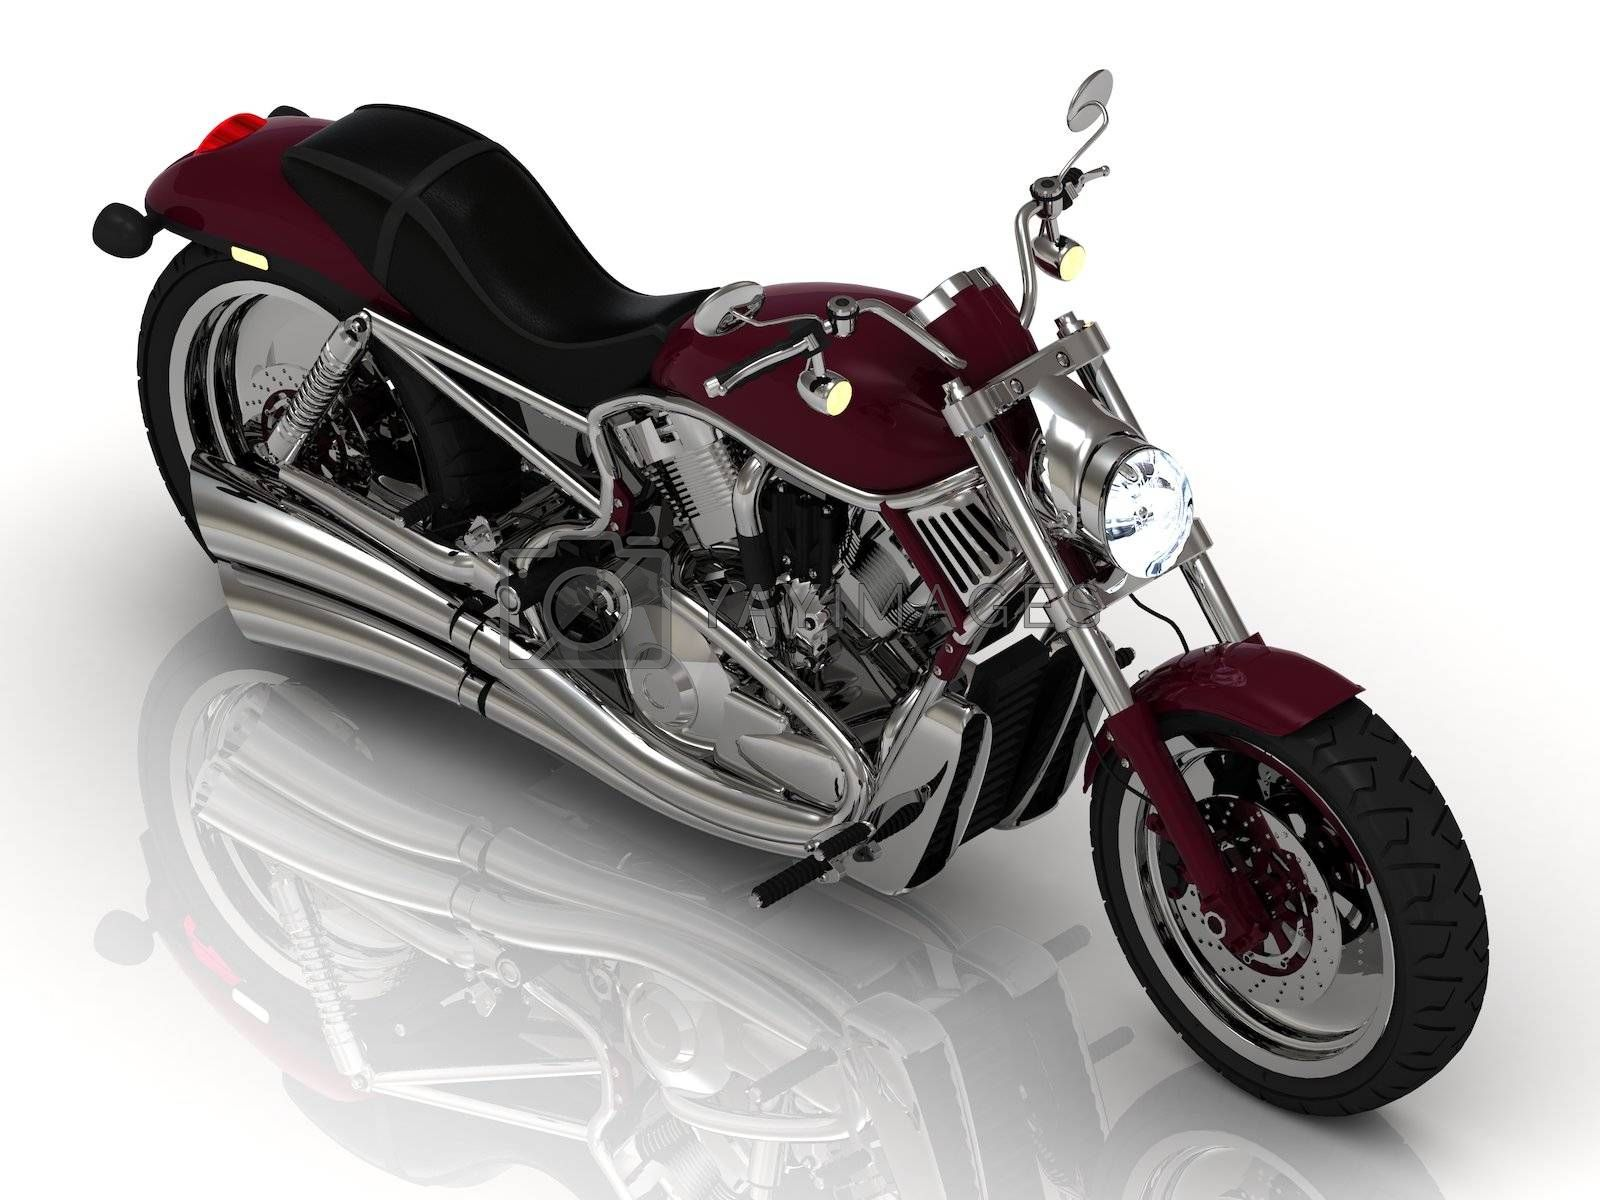 Royalty free image of Motorcycle and chrome engine by GreenMost